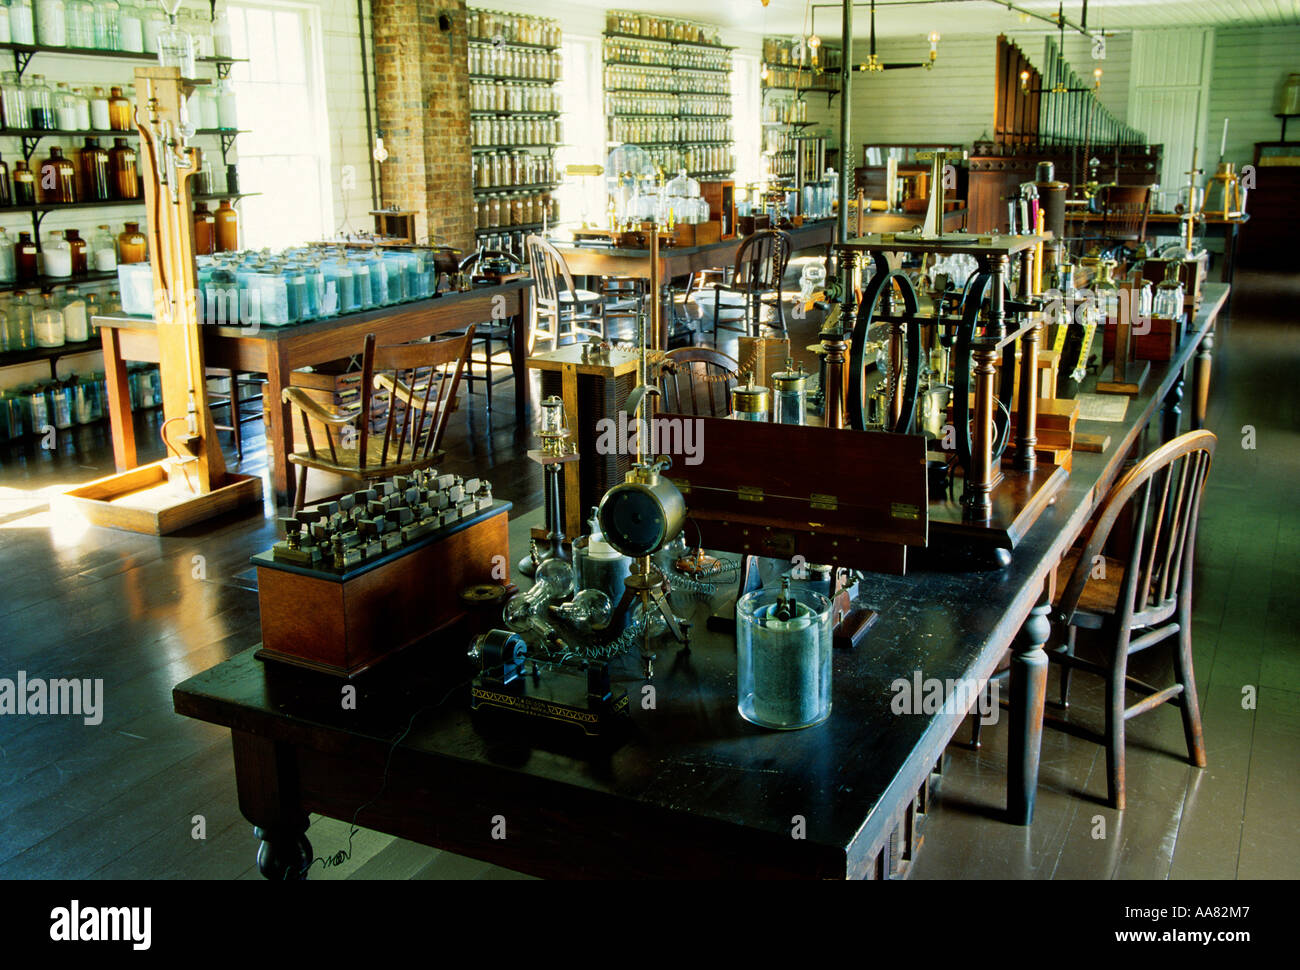 Thomas Edison Menlo Park Laboratory replicated at The Henry Ford Greenfield Village, Dearborn Michigan, USA - Stock Image